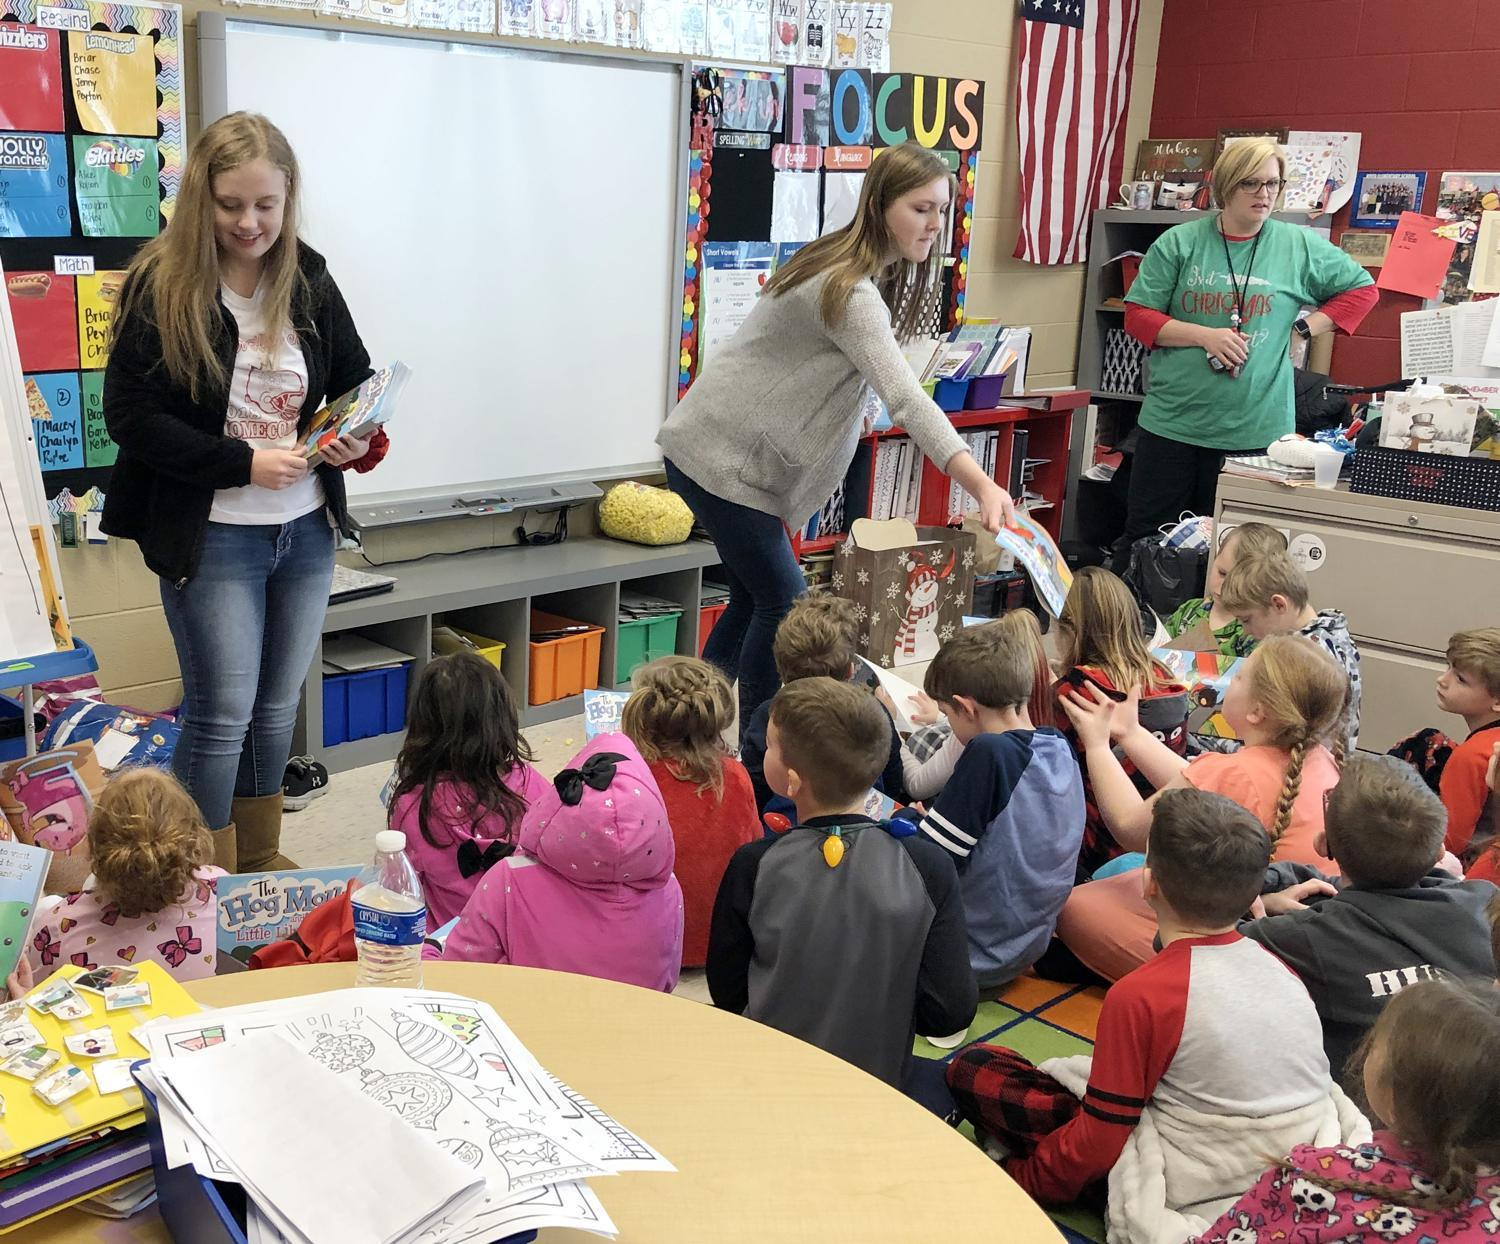 Olivia Romick, left, and Riley Rouse, back right, hand out books to second-grade students at River Elementary School Friday, Dec. 20.